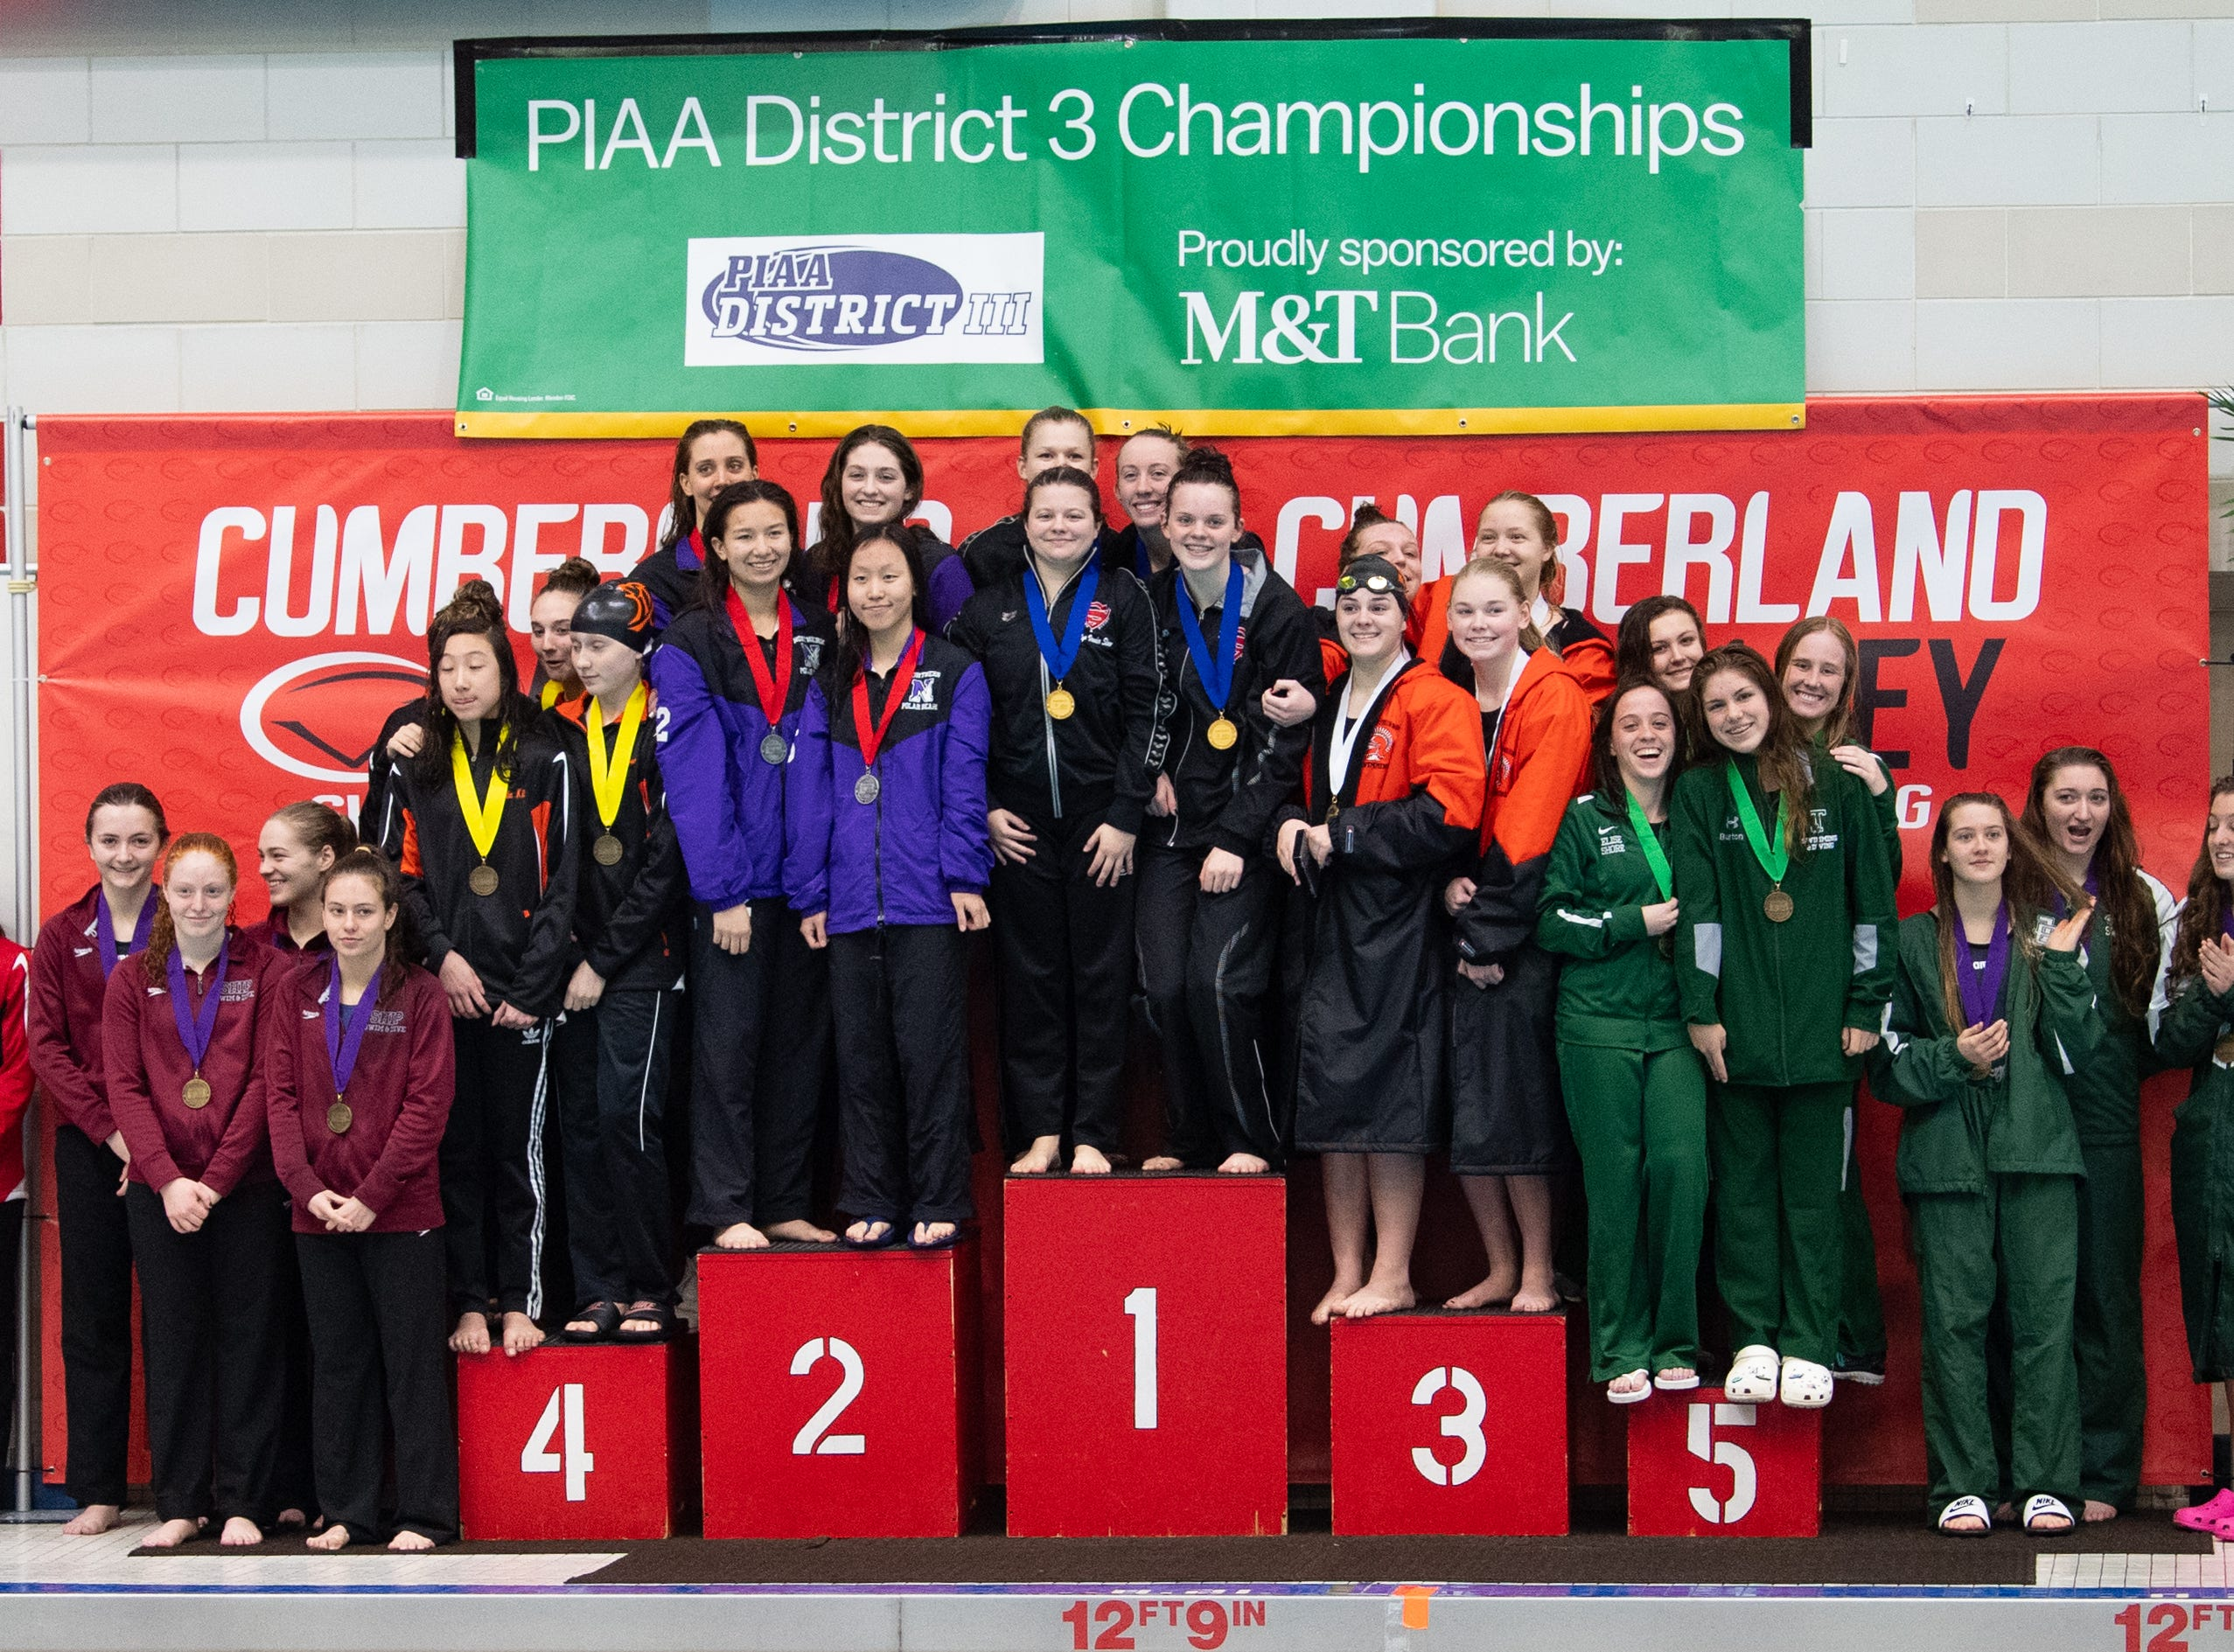 The winners of the Girls 200 Yard Medley Relay stand proudly on the podium during the PIAA District 3 Girls AA Championship, March 1, 2019 at Cumberland Valley High School.